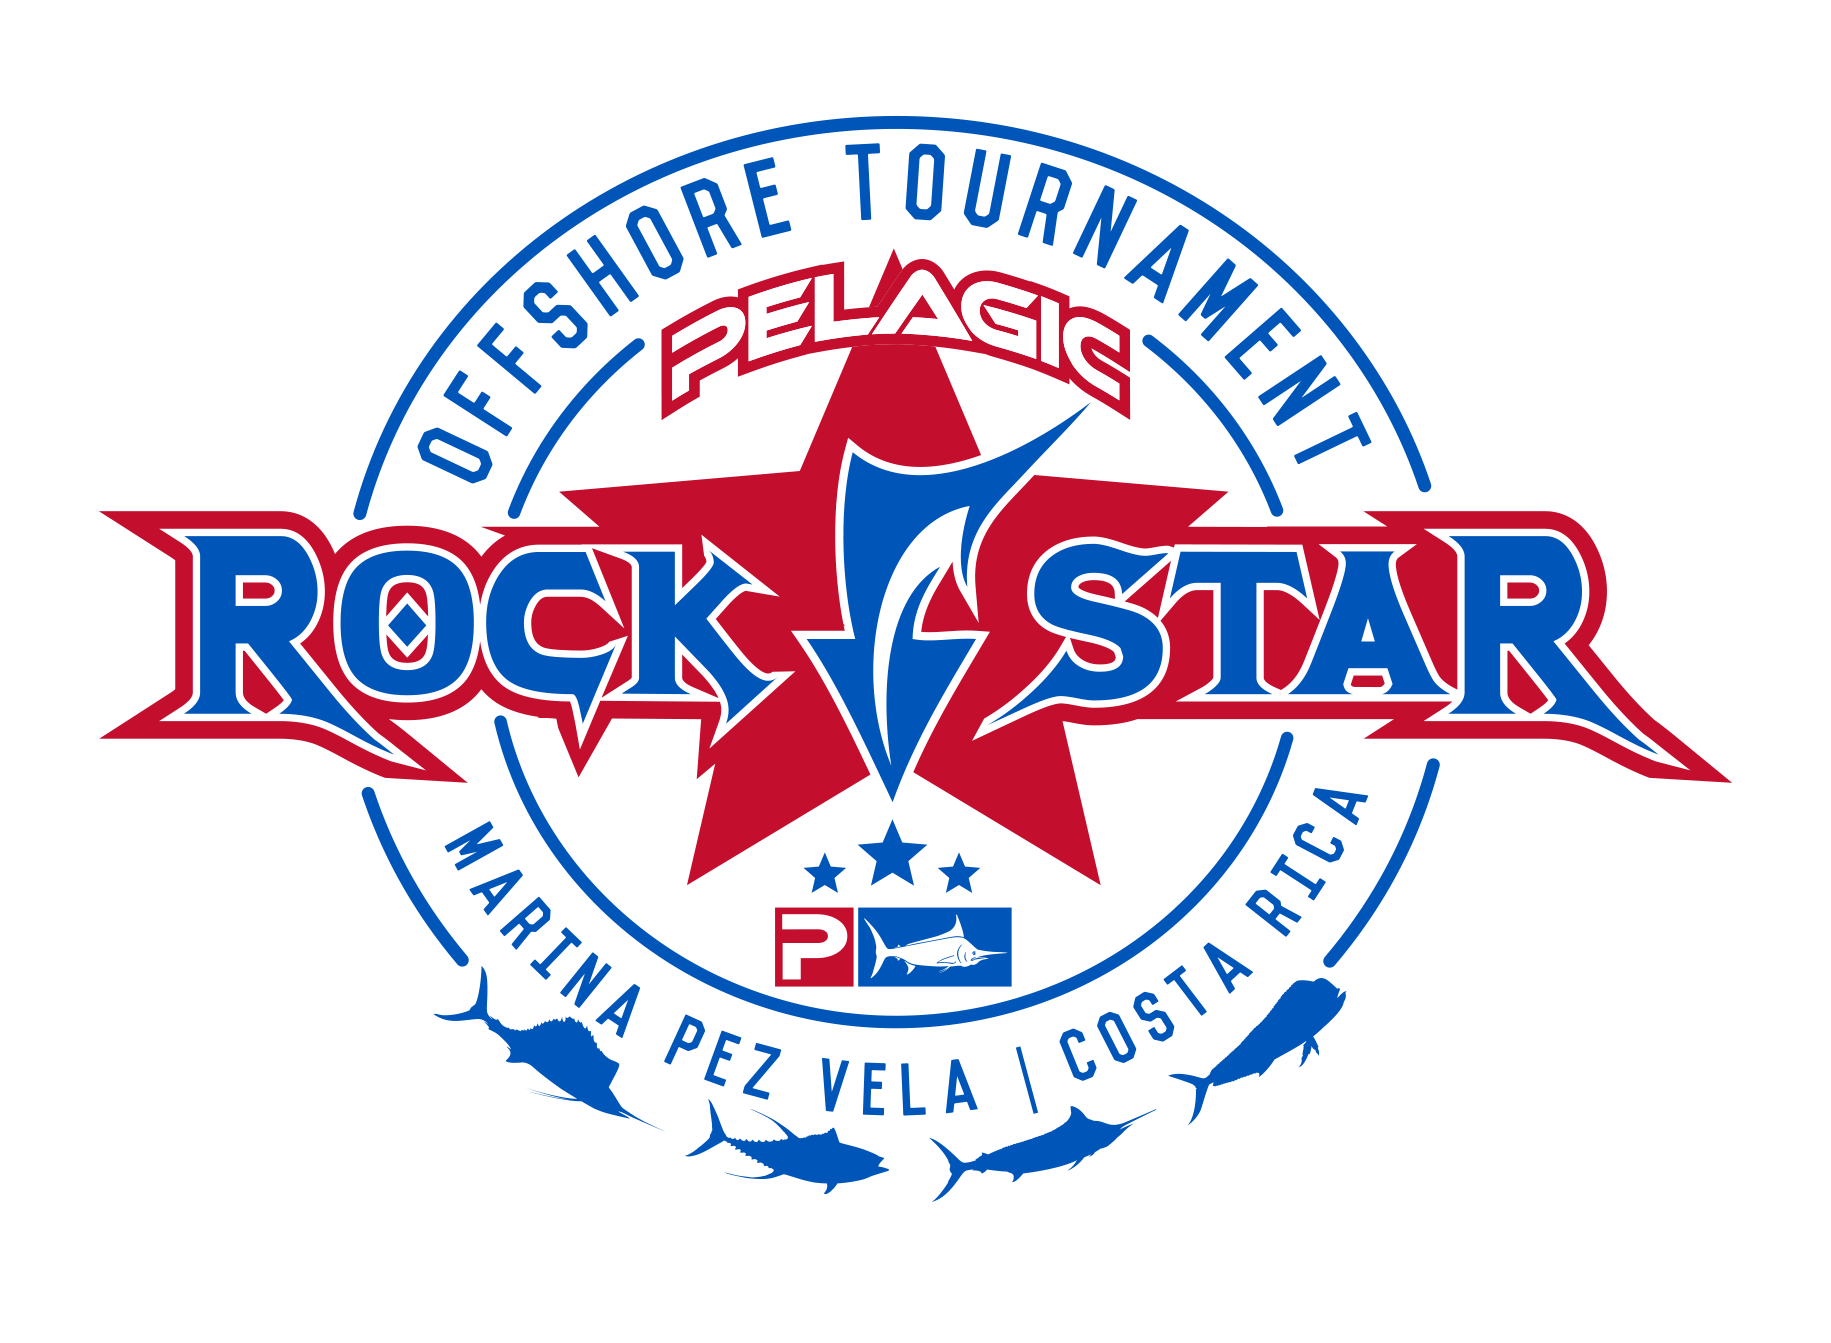 3rd Annual Pelagic Rockstar! Offshore Tournament